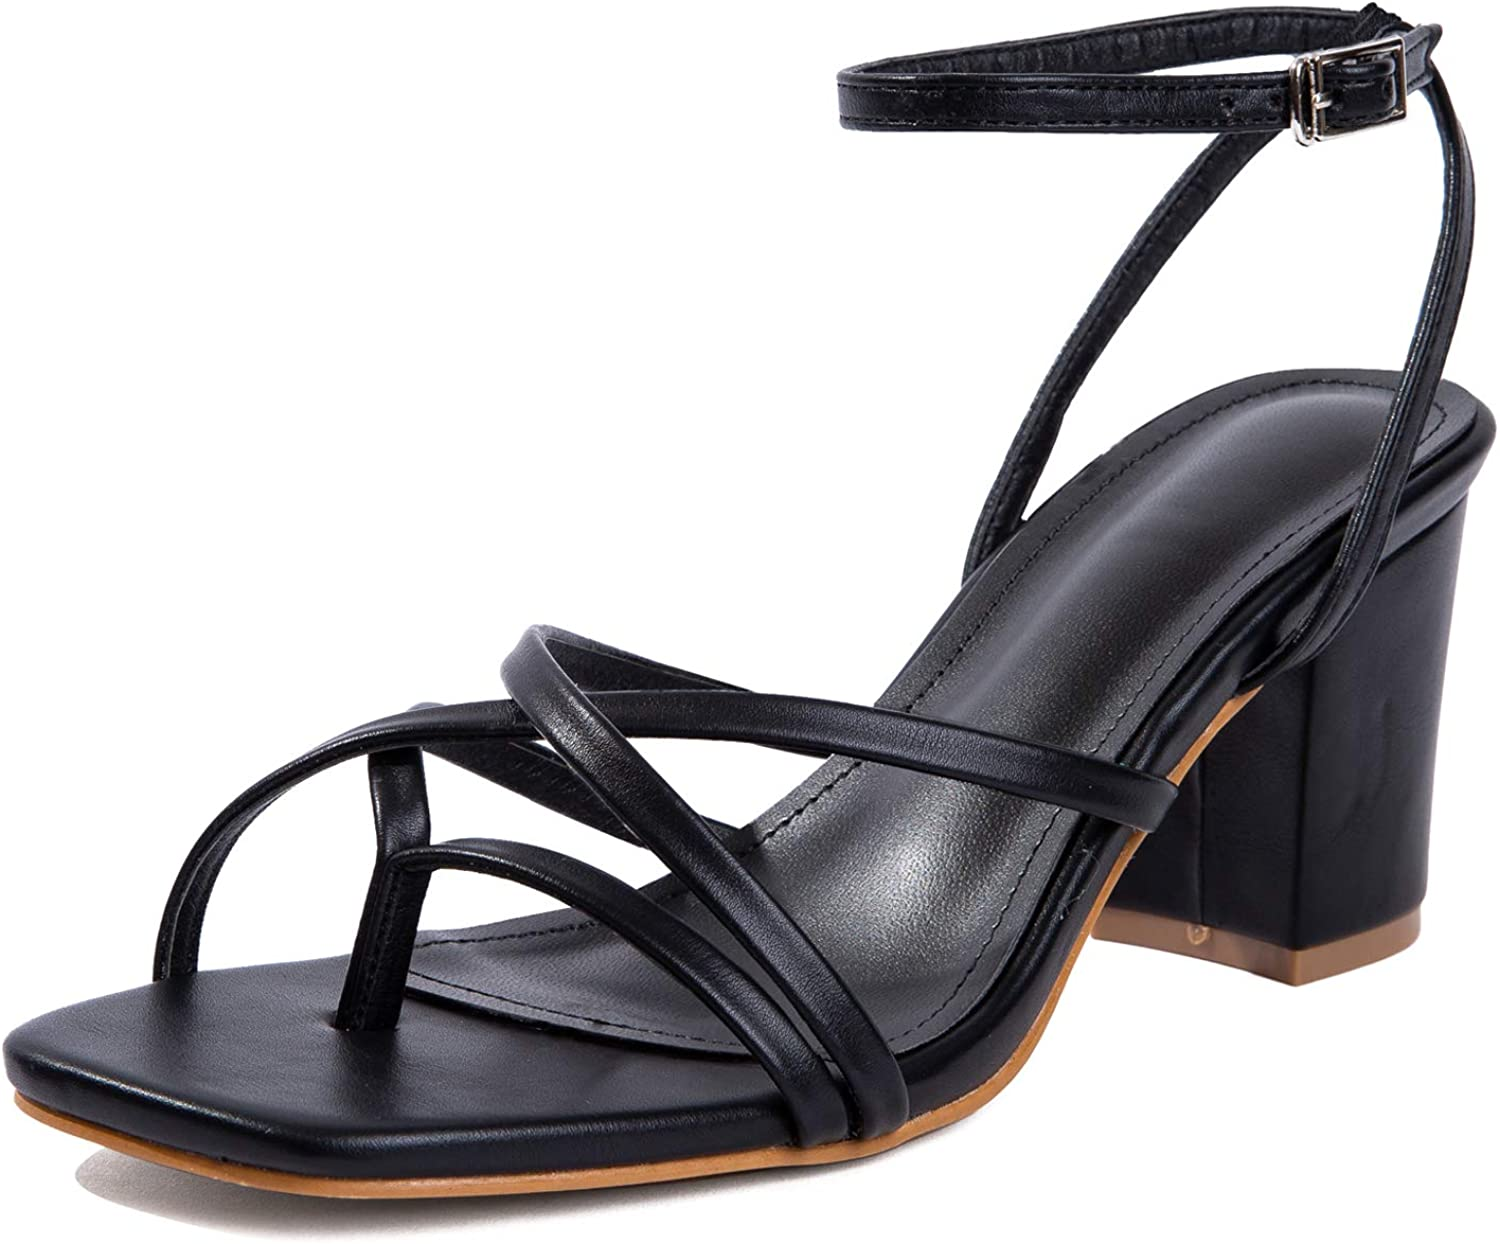 Women Heeled Sandals Woven Block Square-toe Leather Comfortable Strappy Casual Sandals